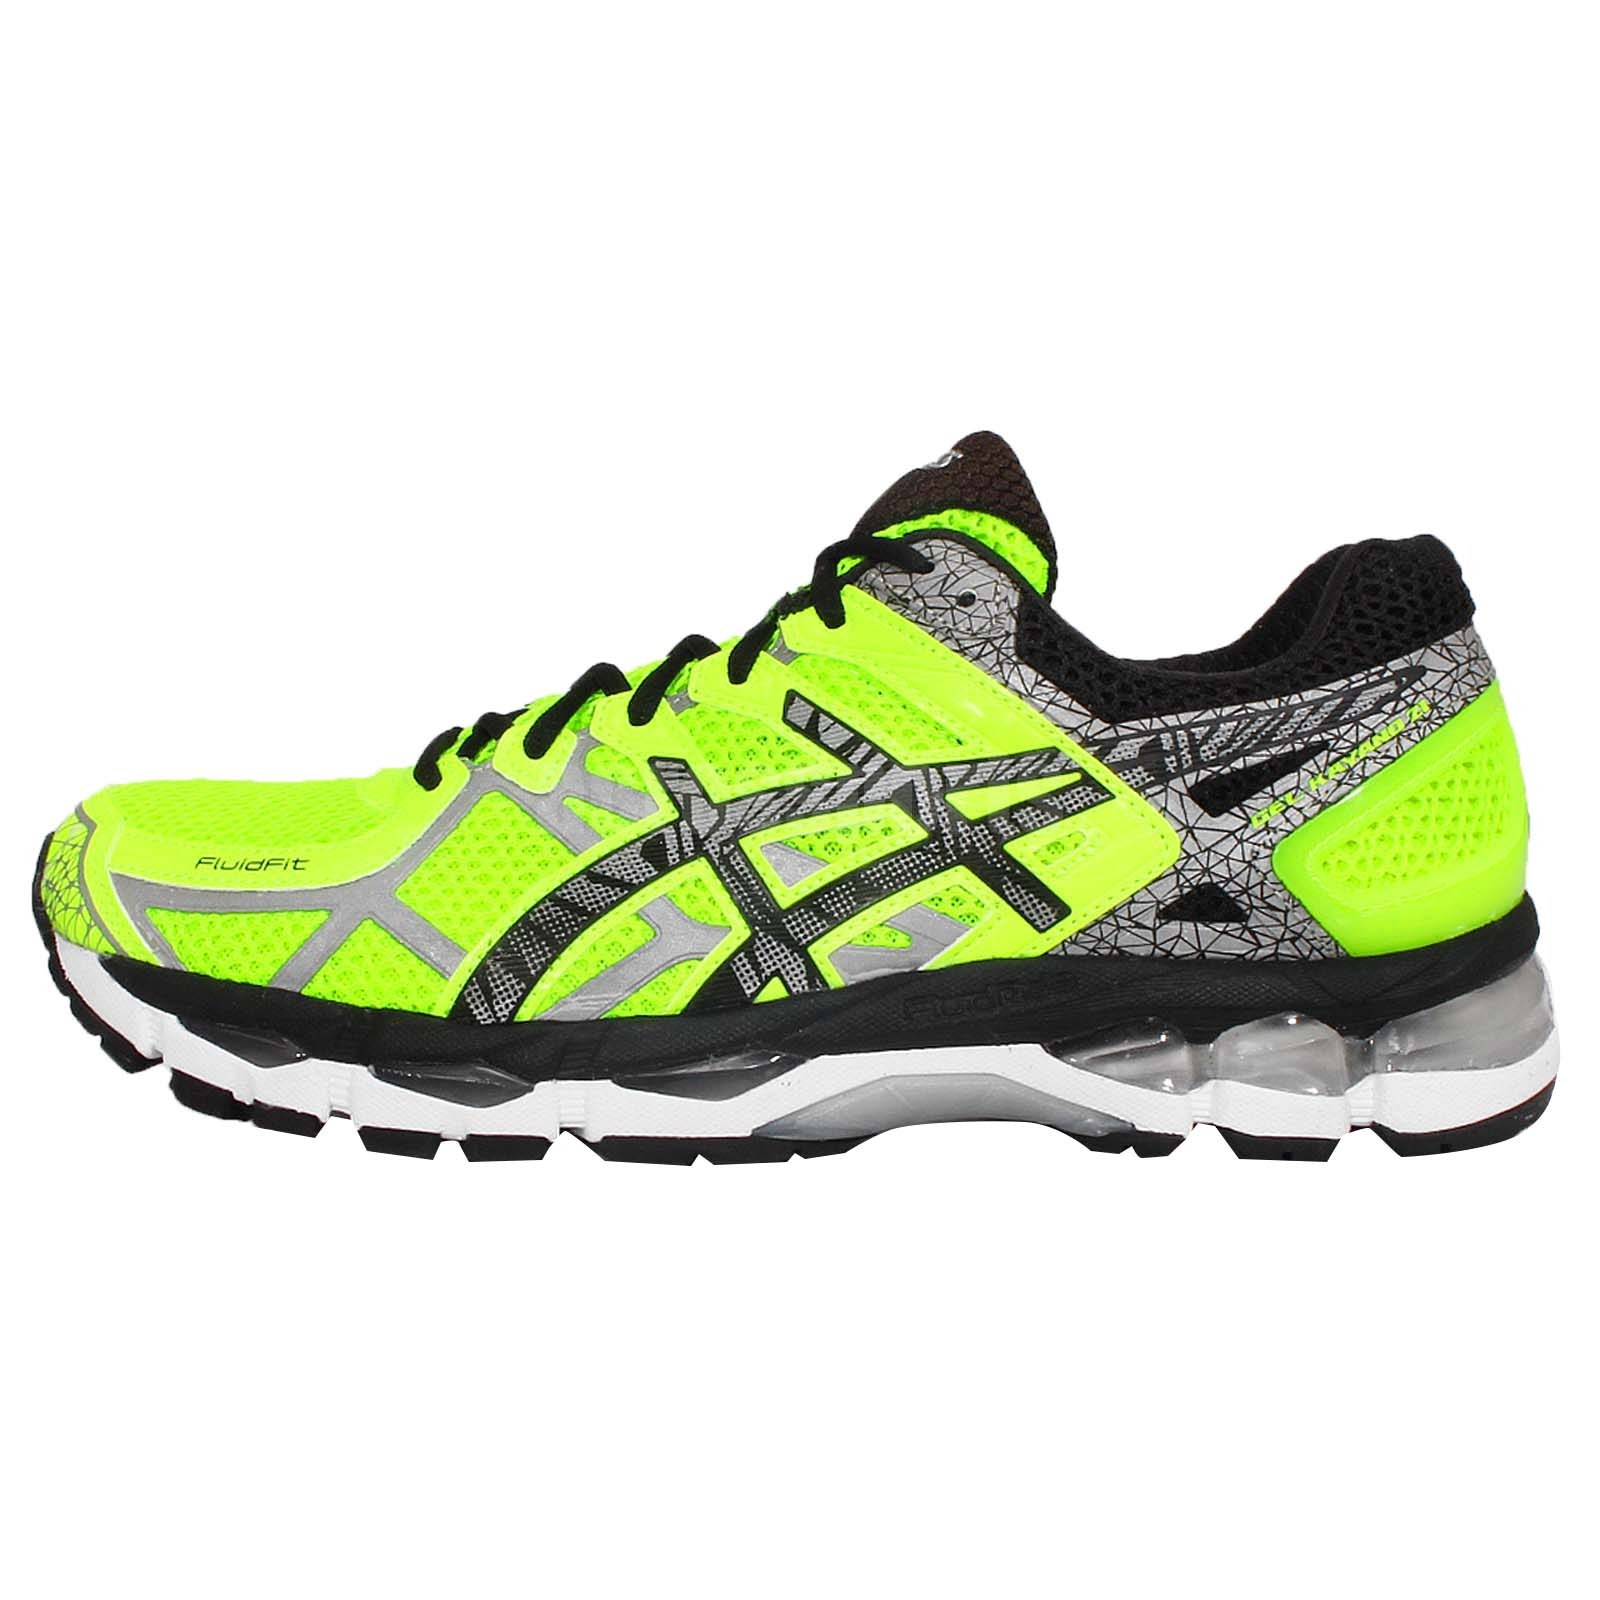 asics gel kayano 21 lite show yellow black mens cushion runner running shoes ebay. Black Bedroom Furniture Sets. Home Design Ideas